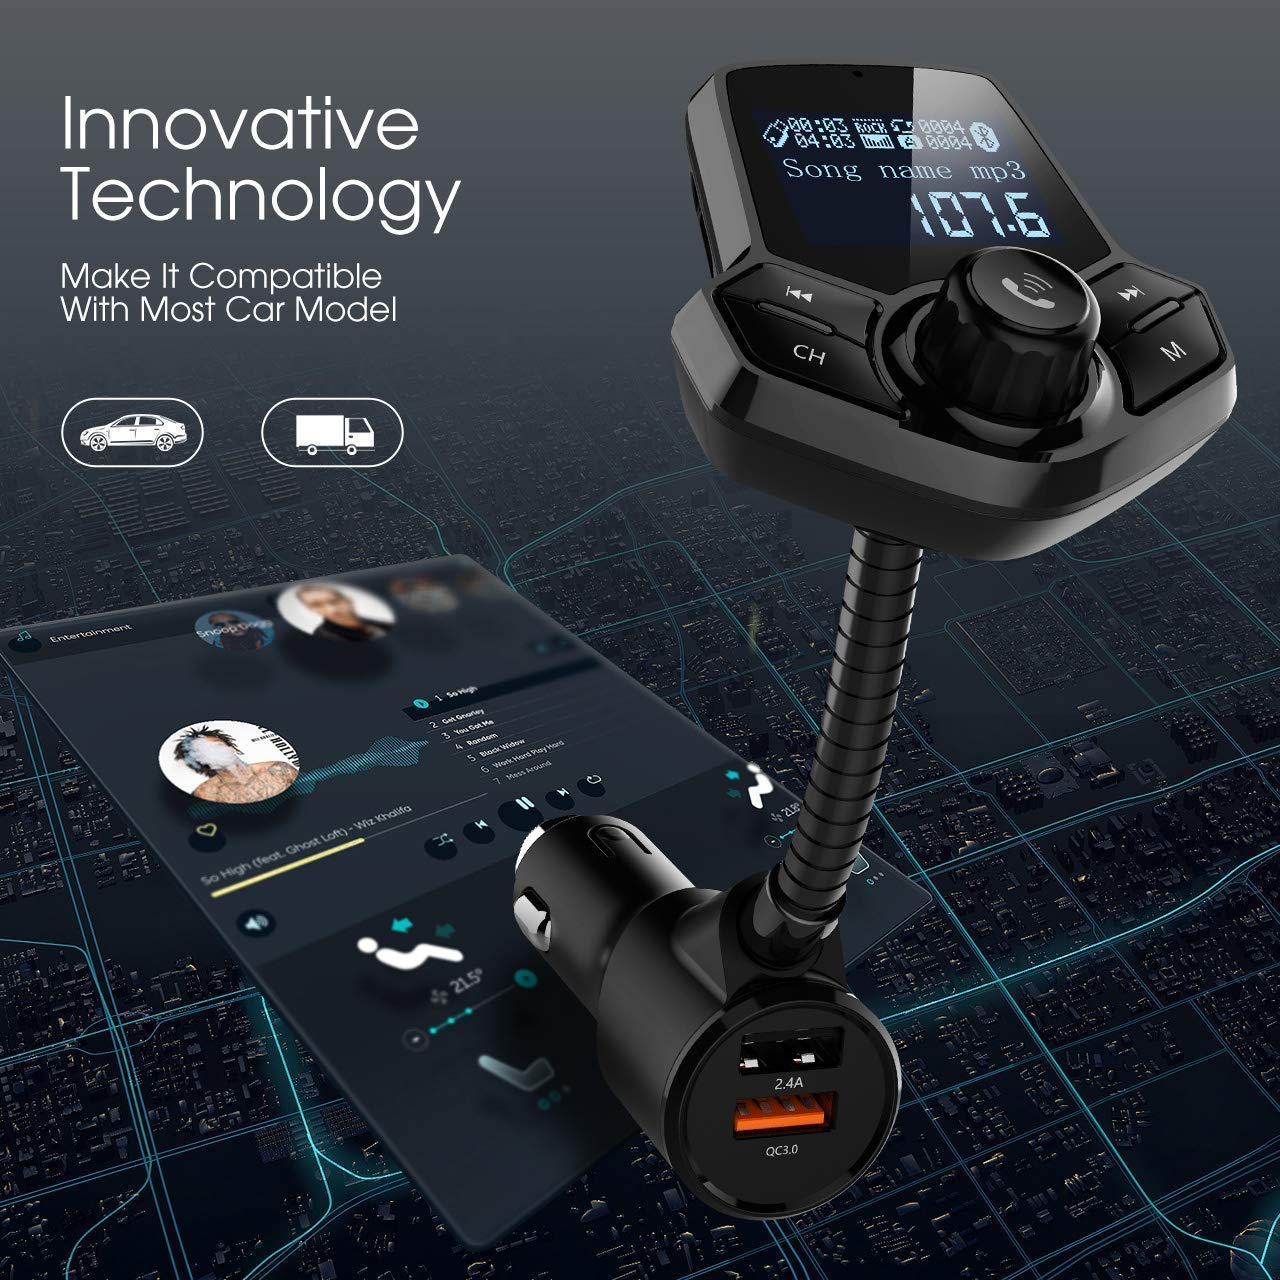 in-Car Bluetooth FM Transmitter Wireless Radio Adapter Hands-Free Car Kit with 1.44 Inches Display TF Card Mp3 Player Dual USB Ports AUX Input/Output Voltmeter Function for Smart Phones Audio Players by JFONG (Image #6)